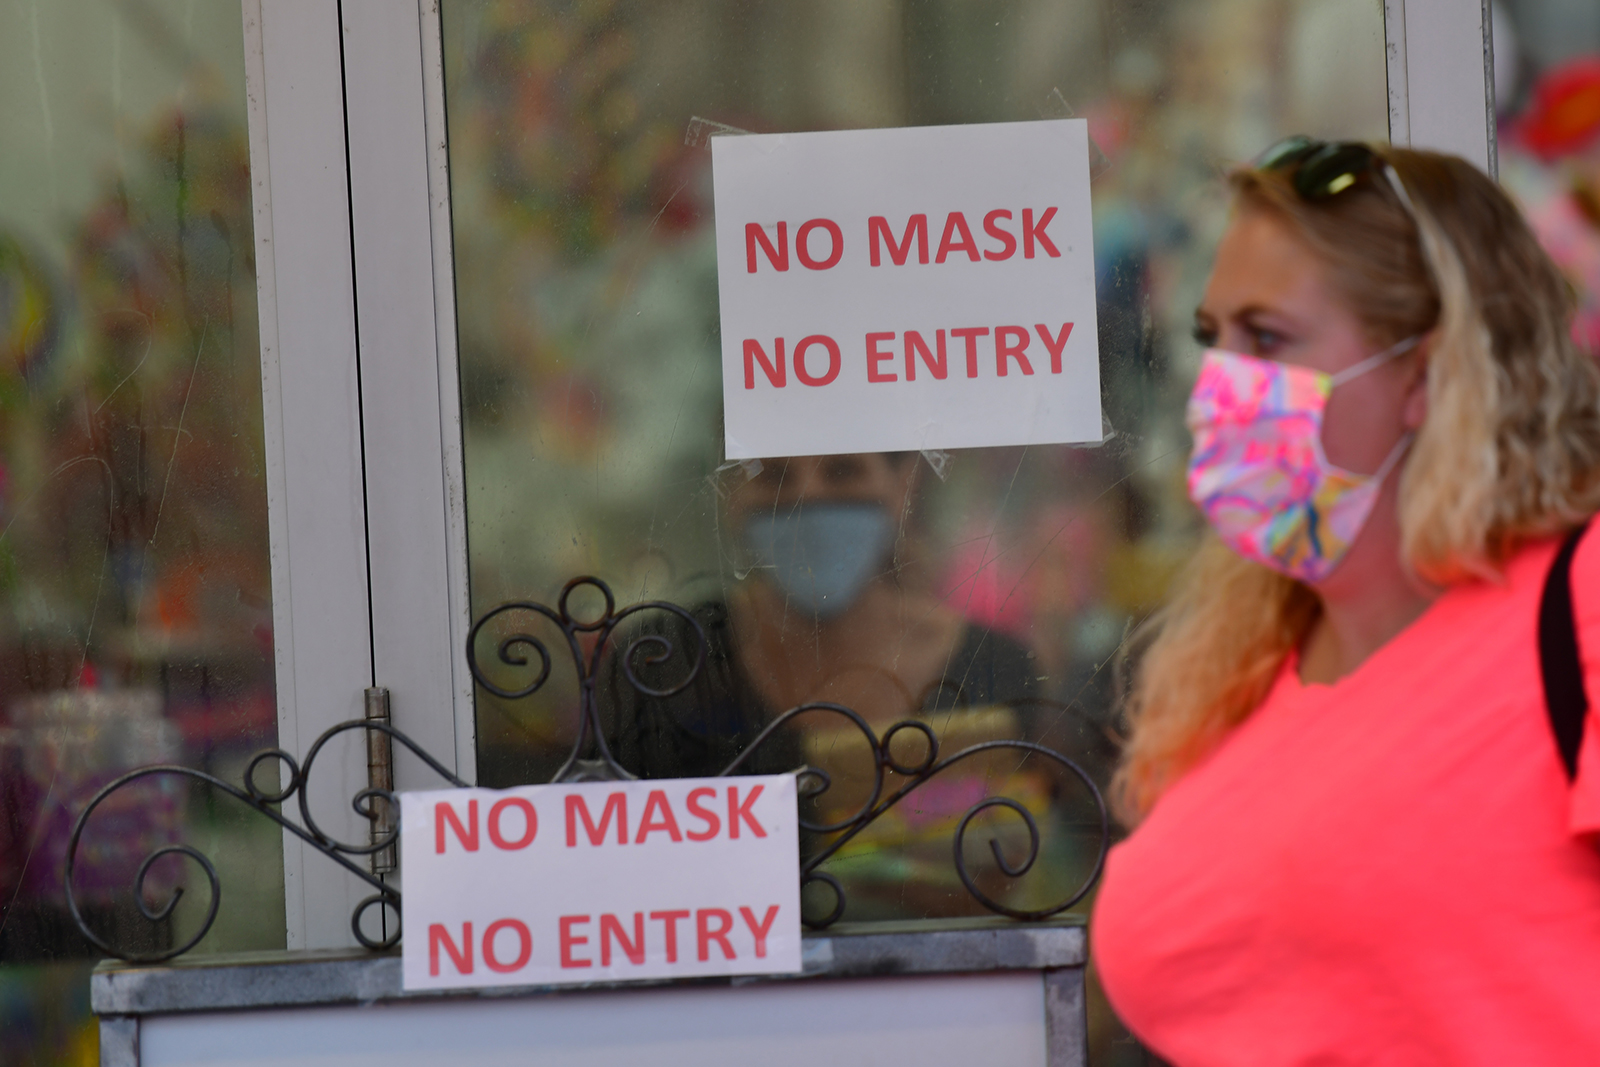 A woman wearing a face mask walks past a Boardwalk store with signs warning patrons of mask requirements on July 3, in Wildwood, New Jersey.